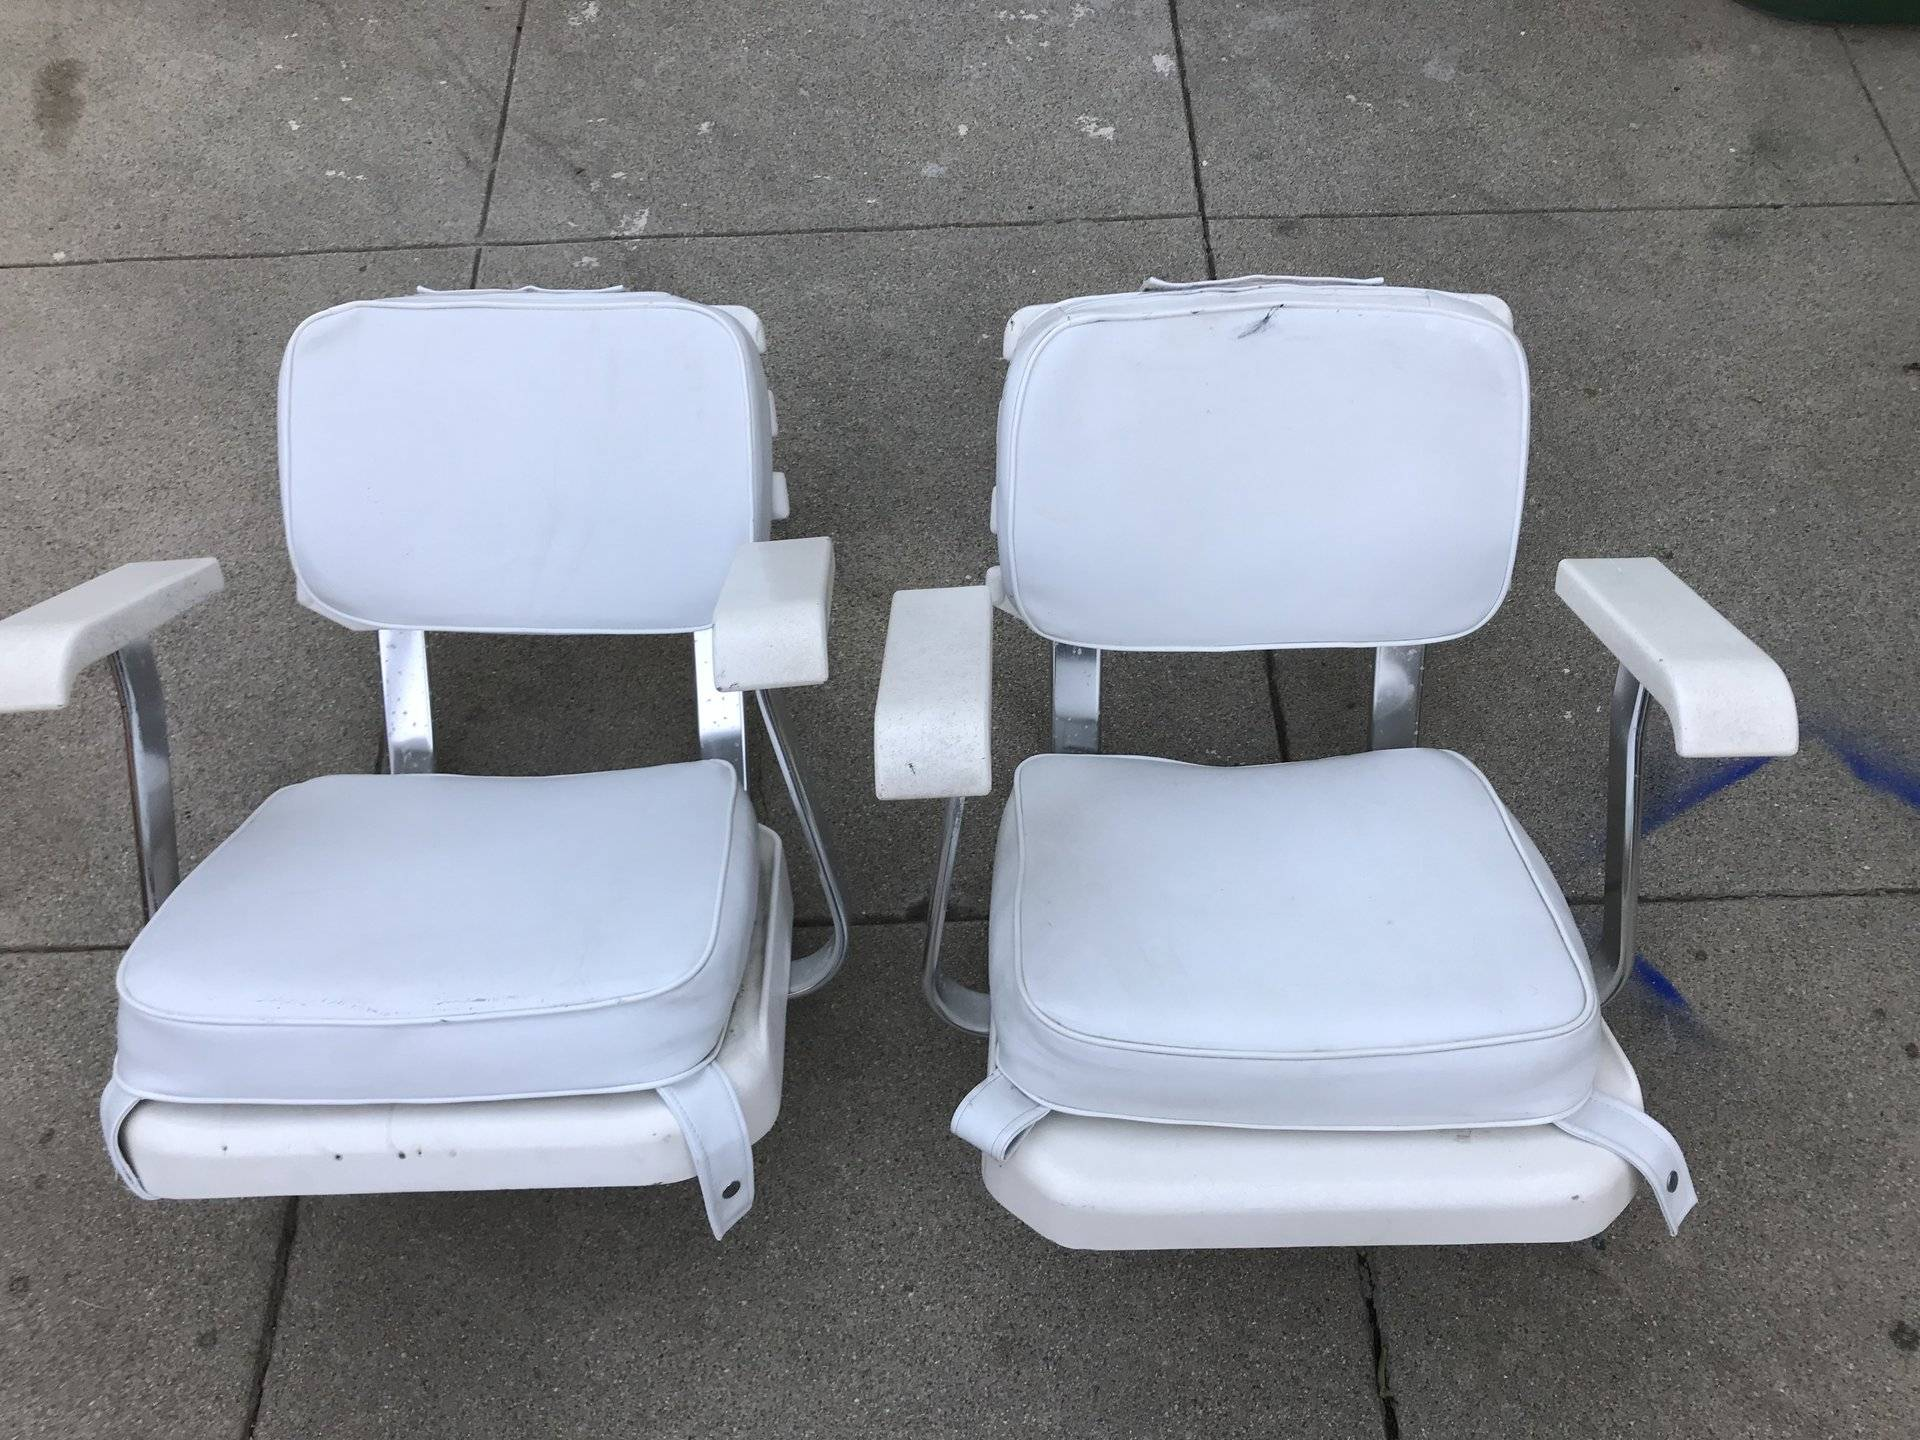 Two Pompanette Ladder Back Helm Seats With Cushions And Slider. In Good  Condition. Both Seats For $400.00 OBO